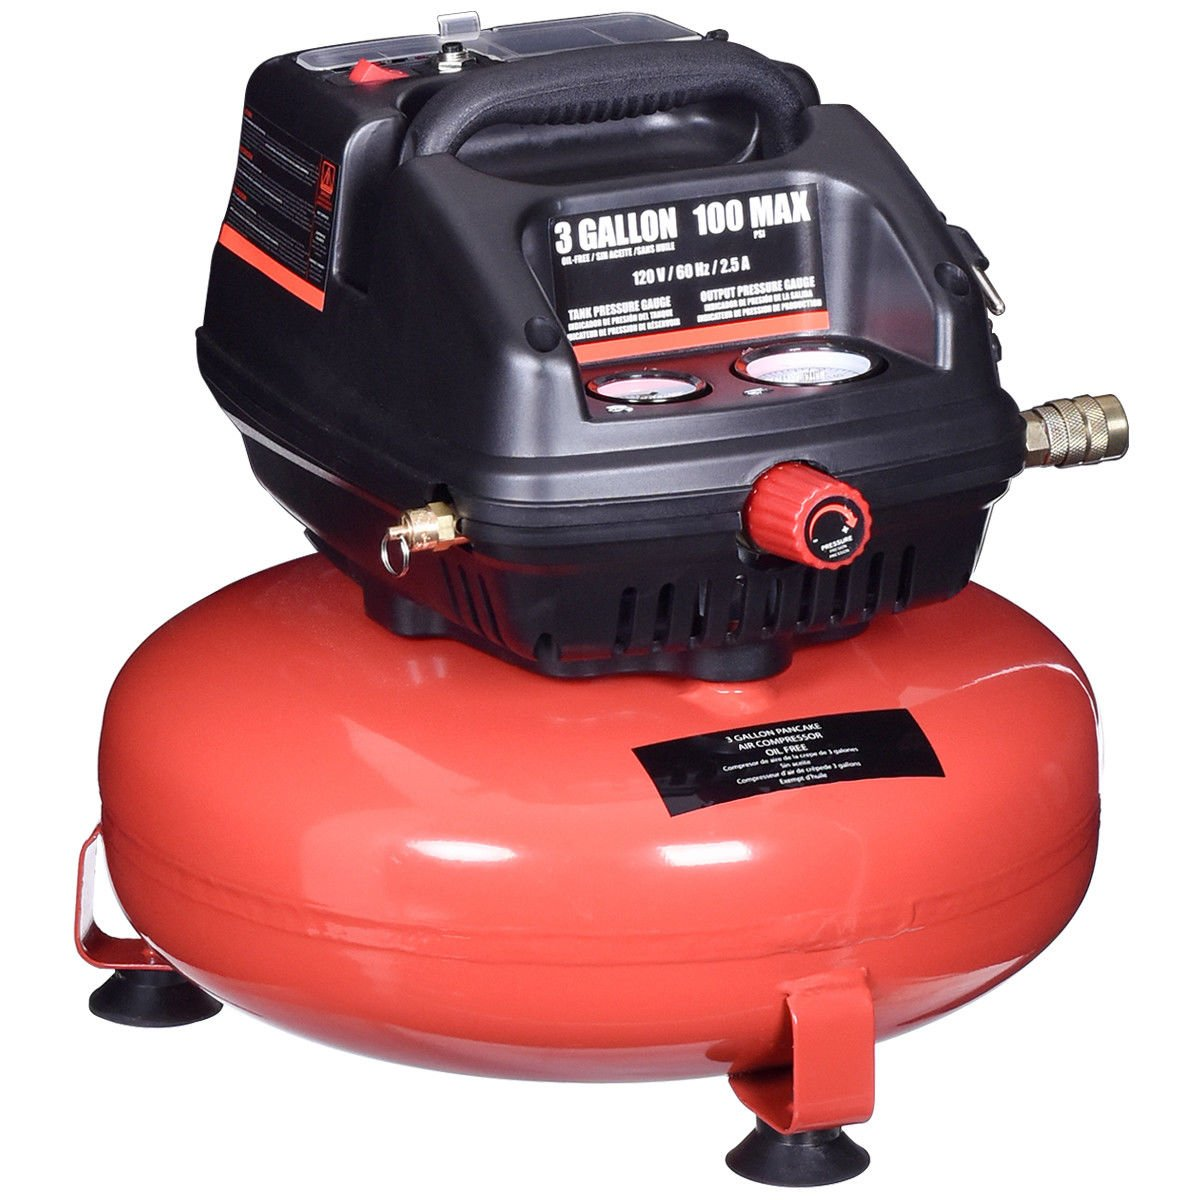 Goplus Oil-Free Air Pancake Compressor Portable Quiet (3 Gallon 100 PSI 0.5HP Compressor) by Goplus